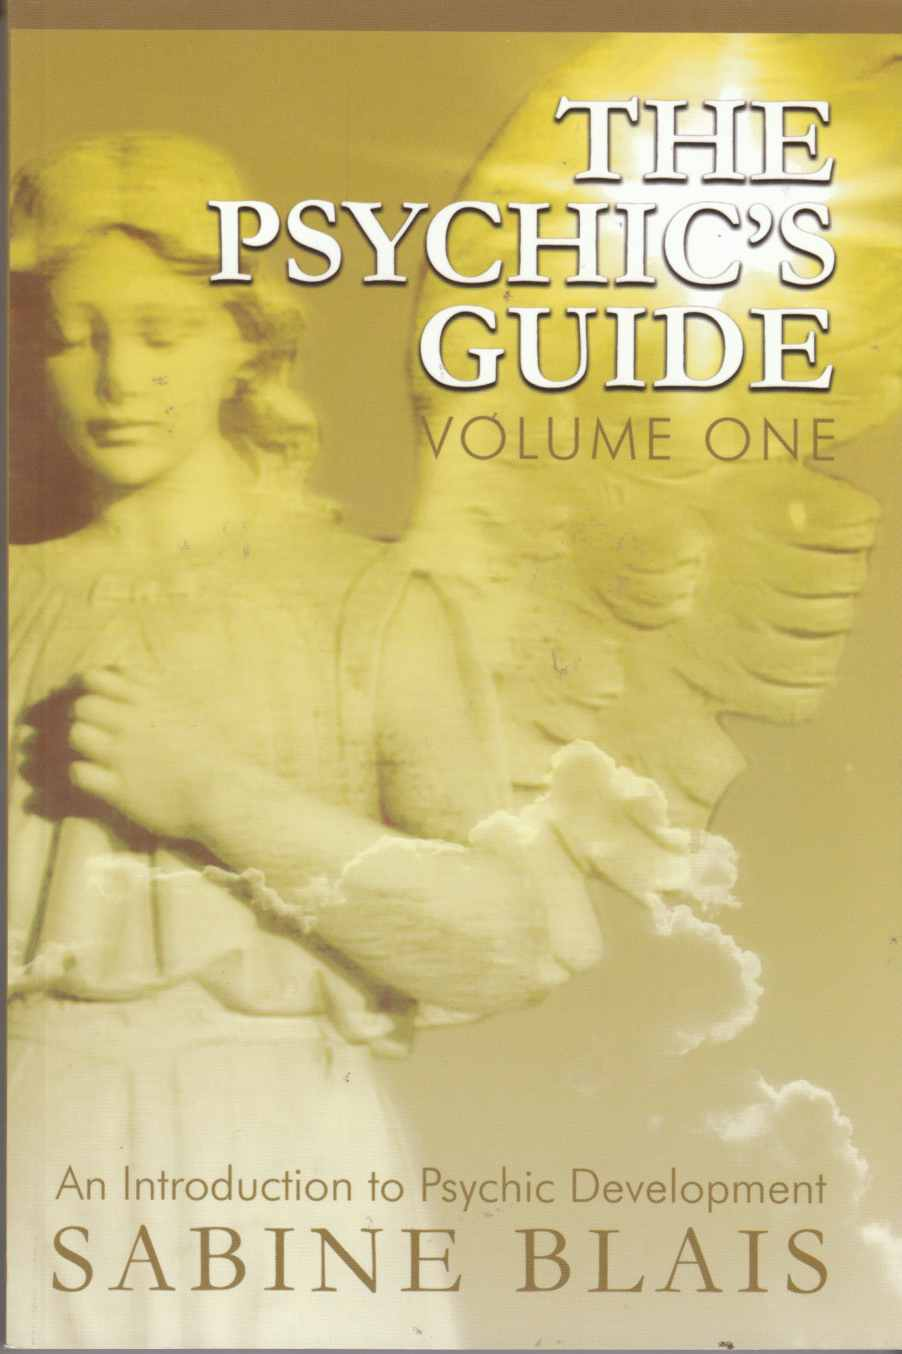 Image for The Psychic's Guide: Volume One - An Introduction to Psychic Development